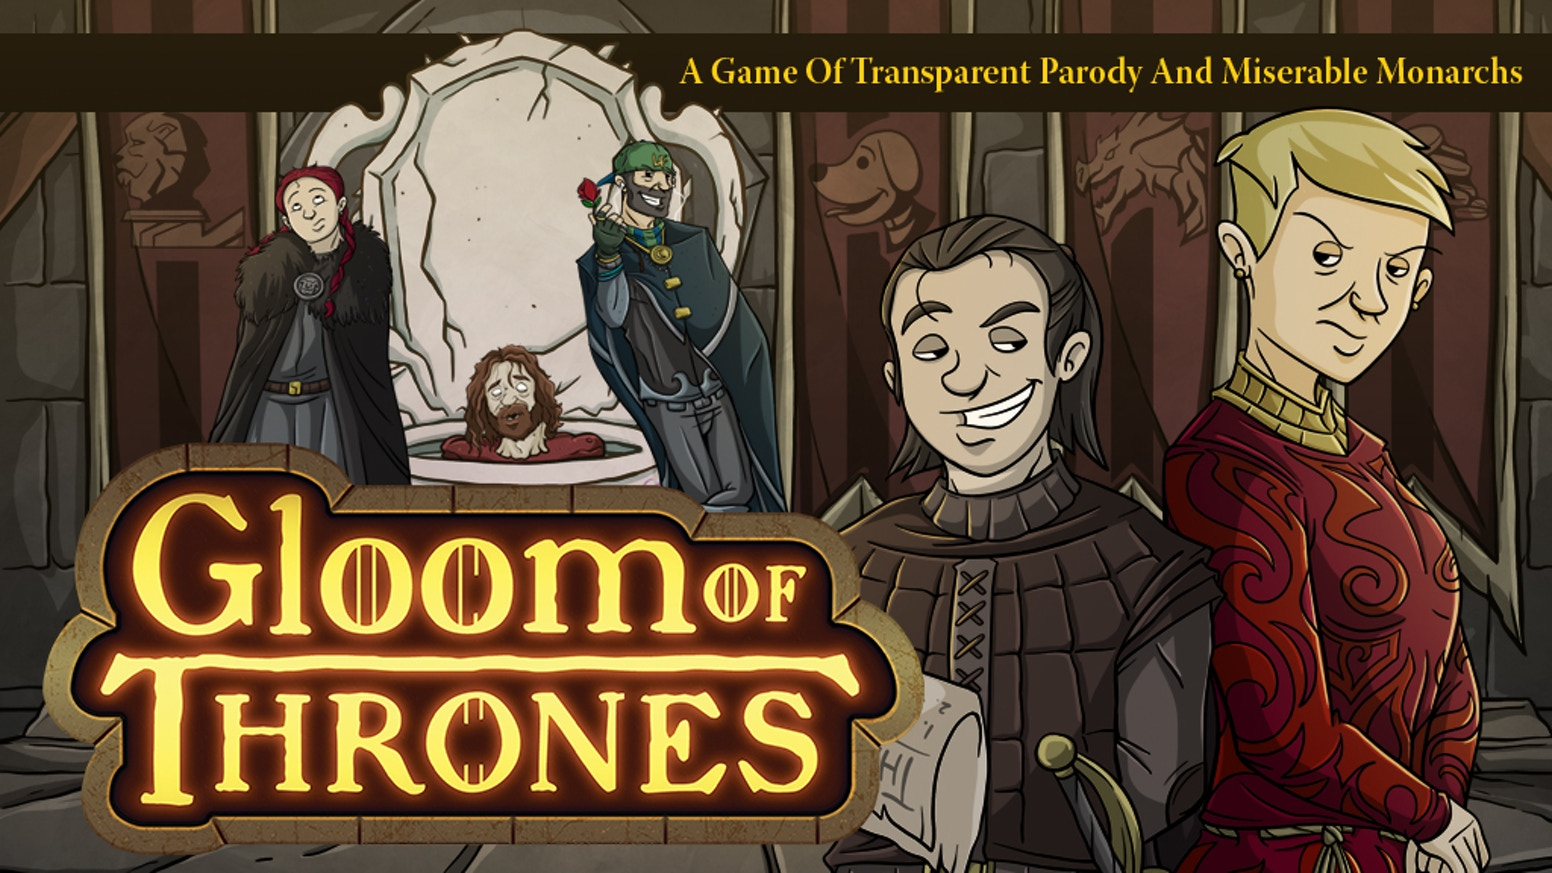 Gloom of Thrones: A Transparent Parody of Miserable Monarchs